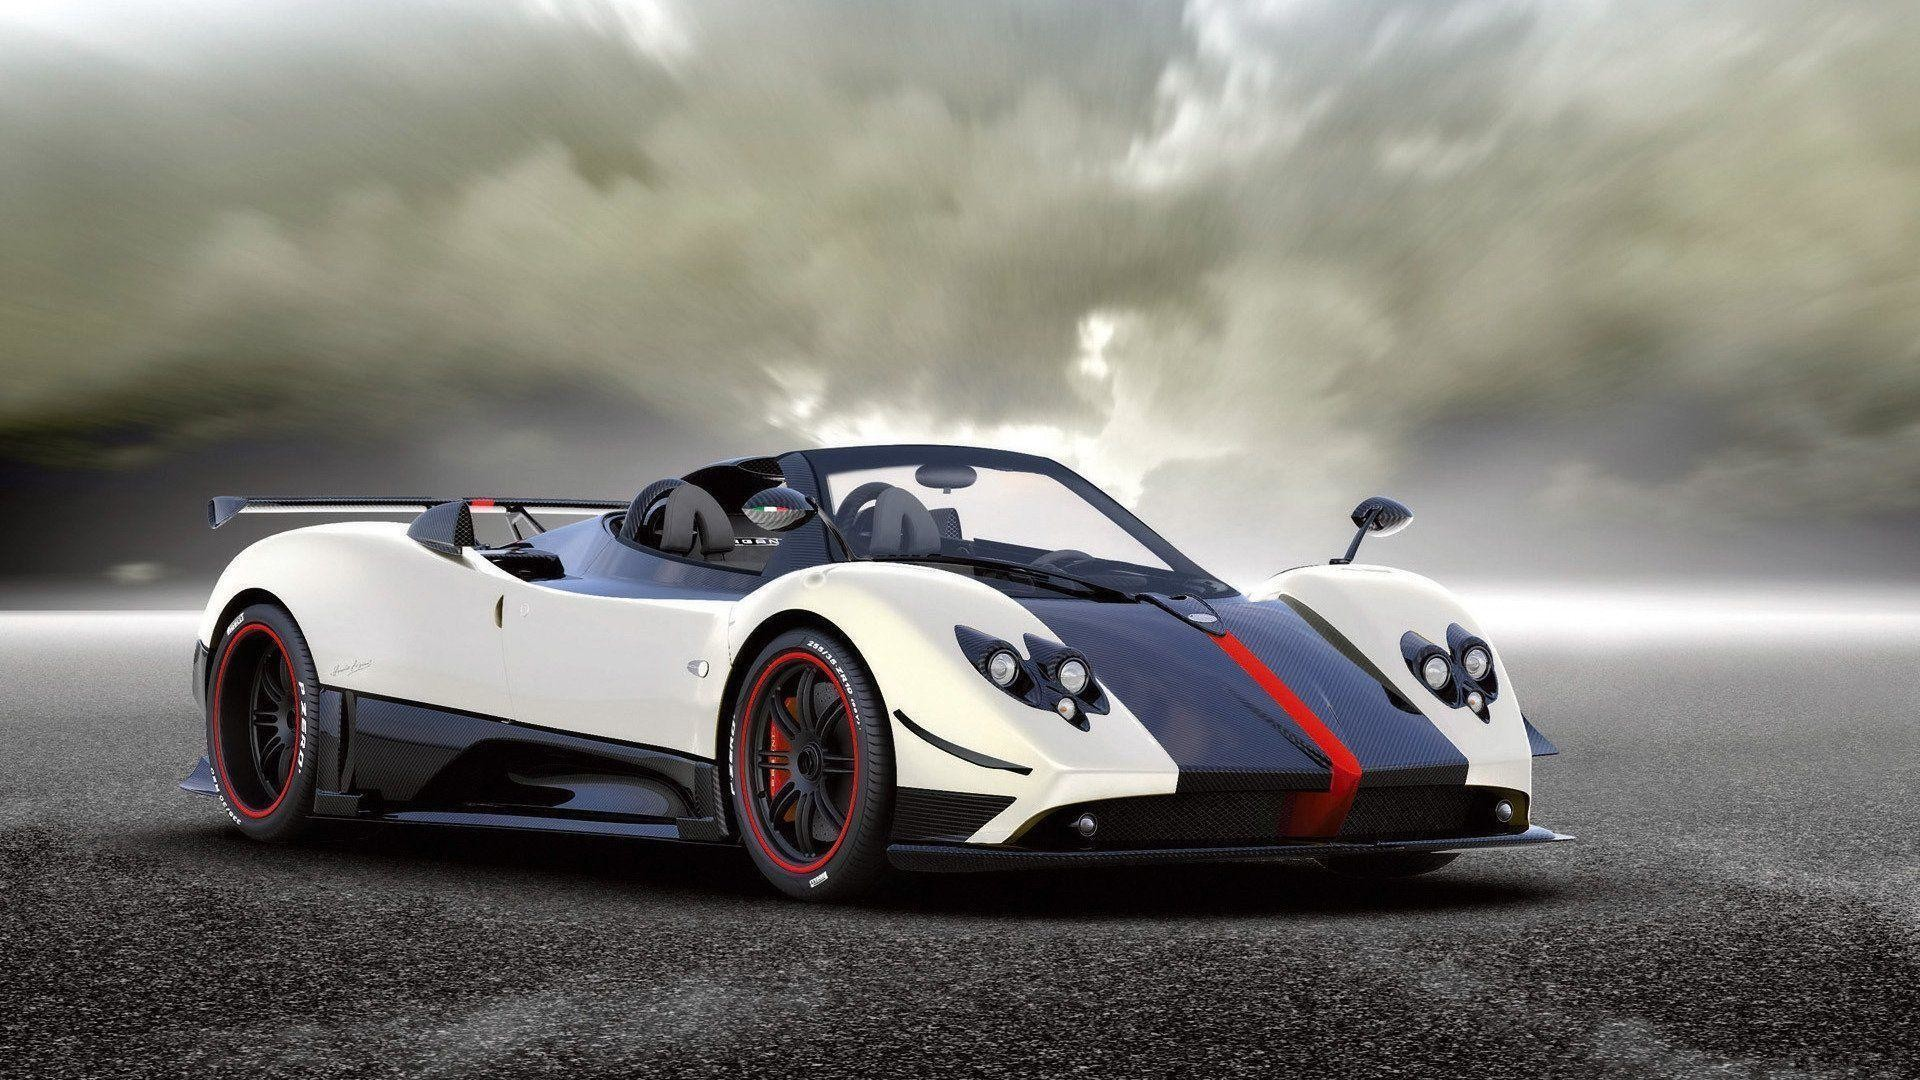 Cool Cars Wallpaper Images - Amazing cool cars